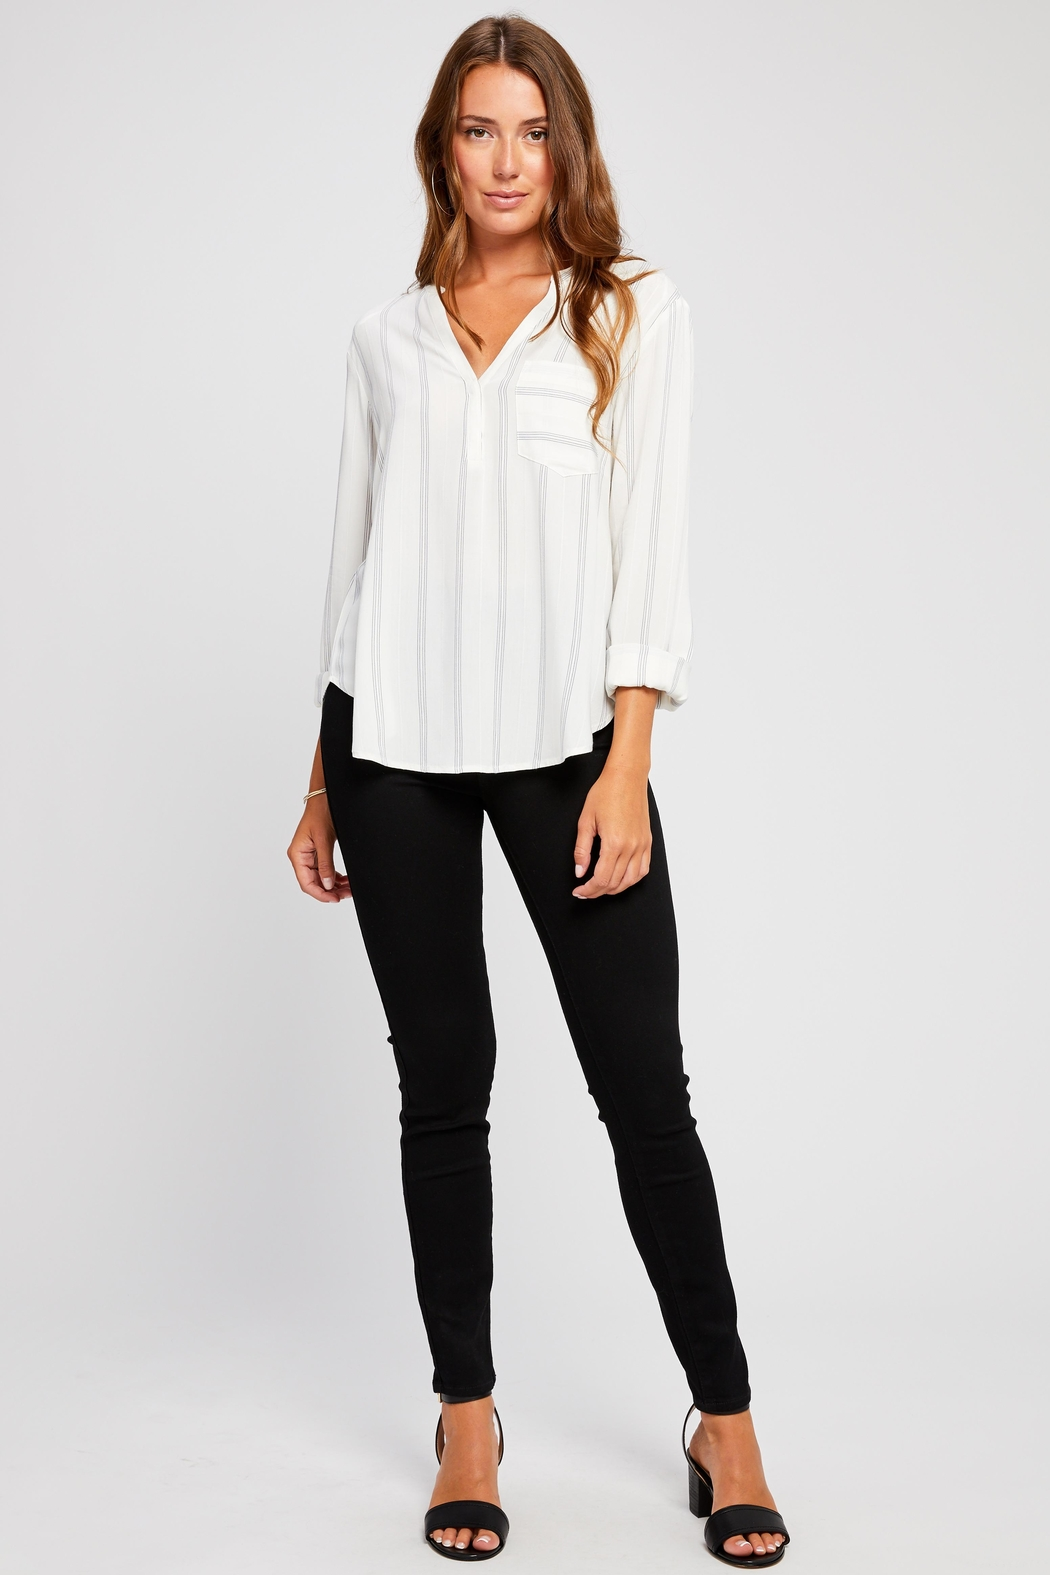 e4d6e98f064 Gentle Fawn Laia Striped Blouse from Florida by Dressing Room ...